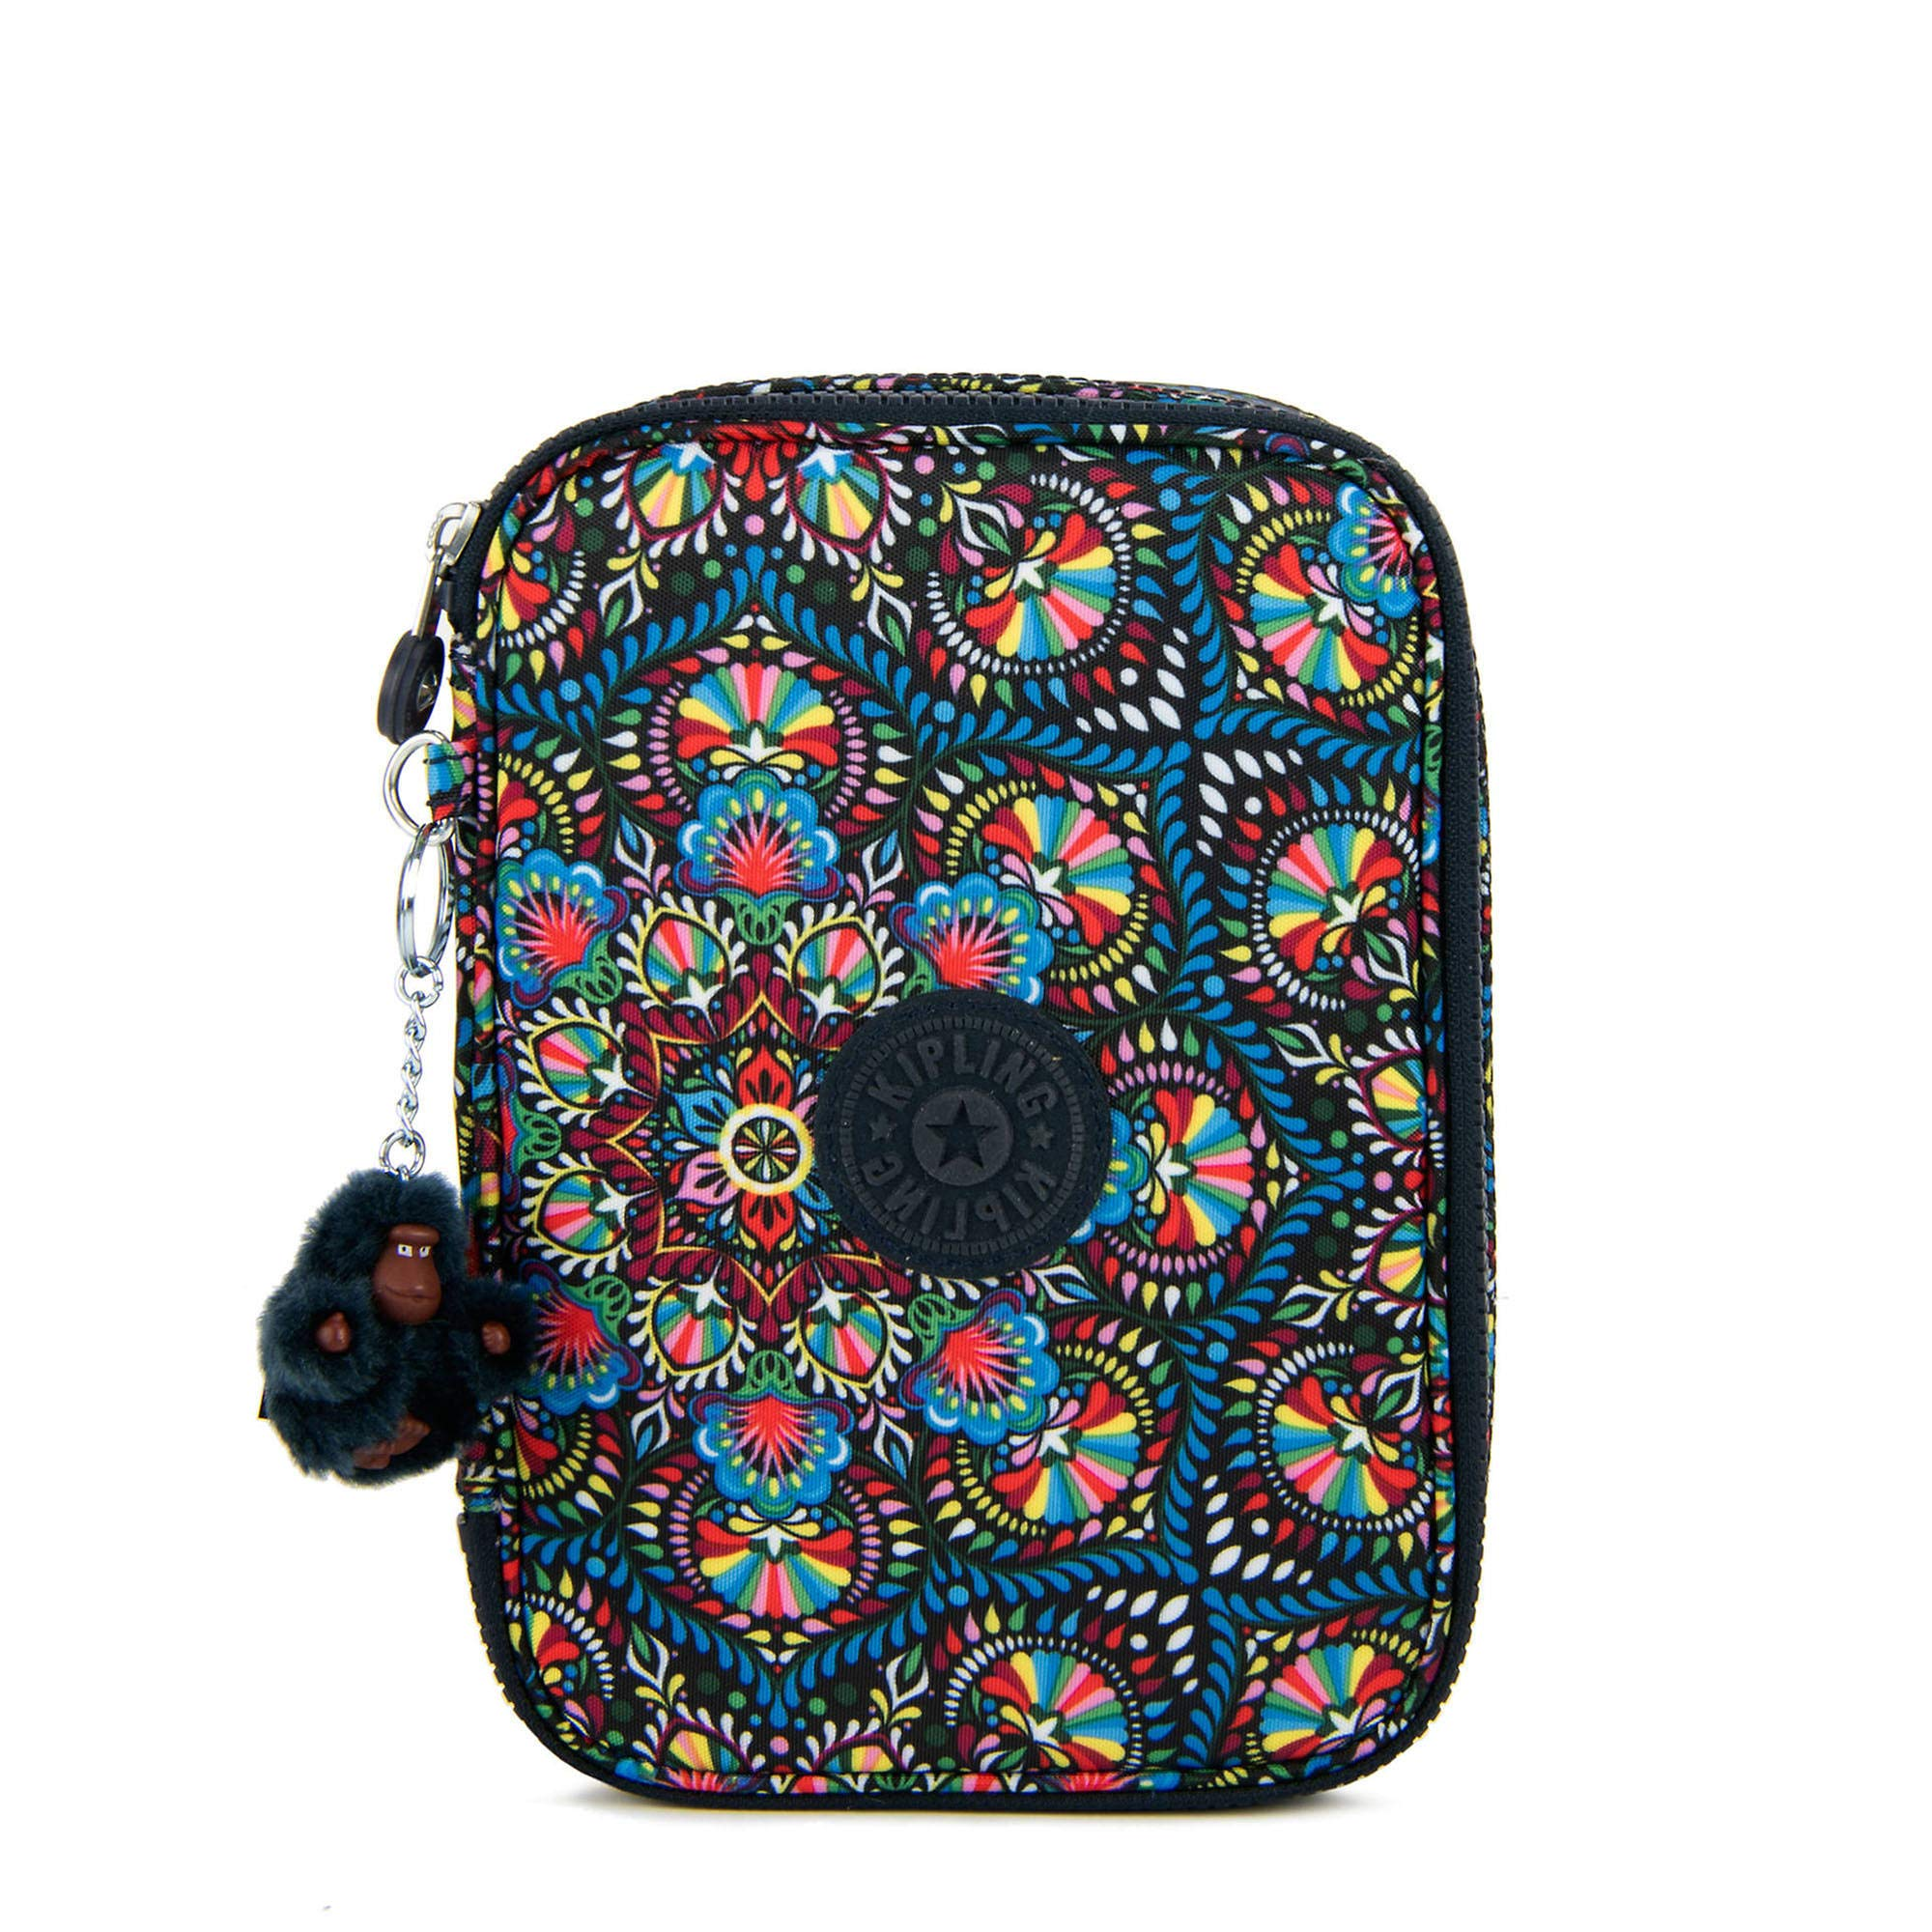 Kipling 100 Pens Printed Case Sunshine Burst